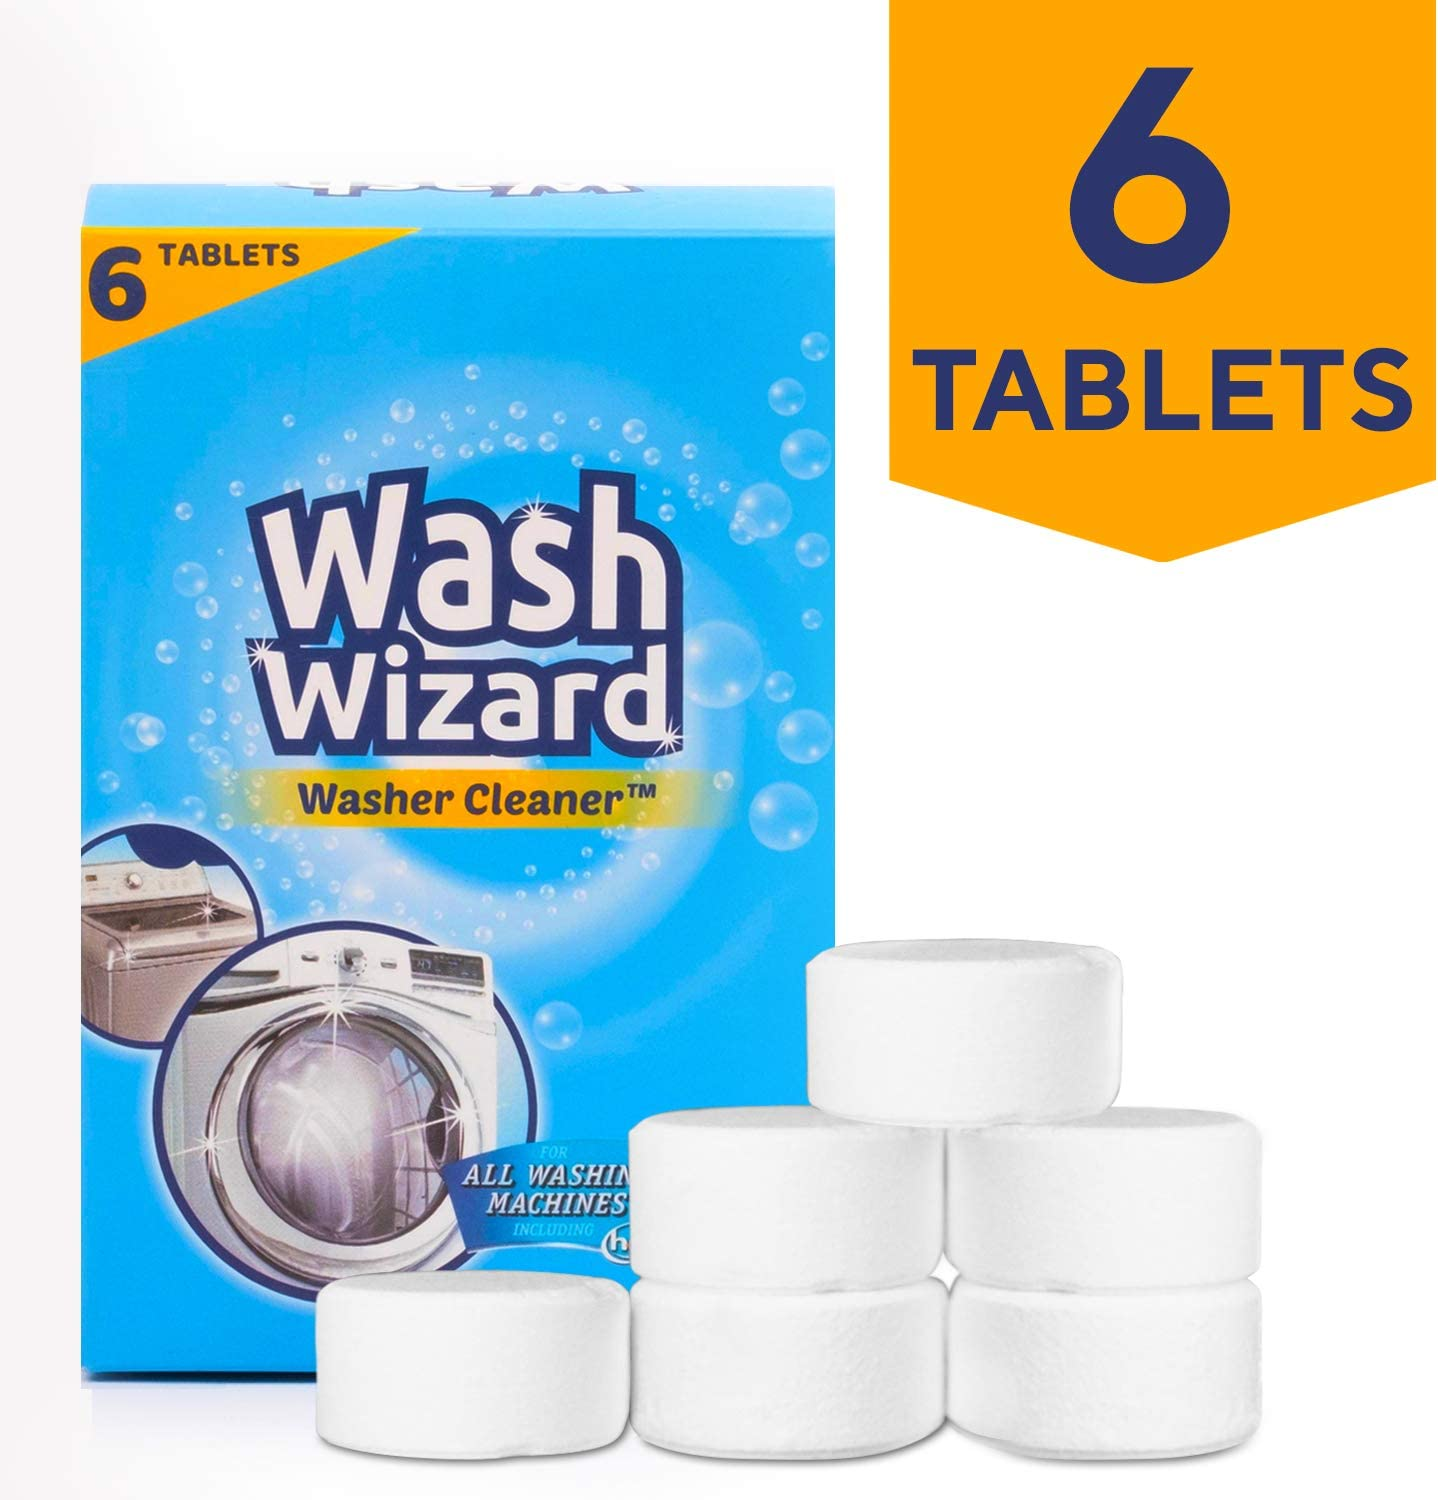 WASH WIZARD Washing Machine Cleaner - 6 Tablets (White), Cleans Front Load and Top Load Washers Including HE, Safe For all Washer Components and Septic Tanks